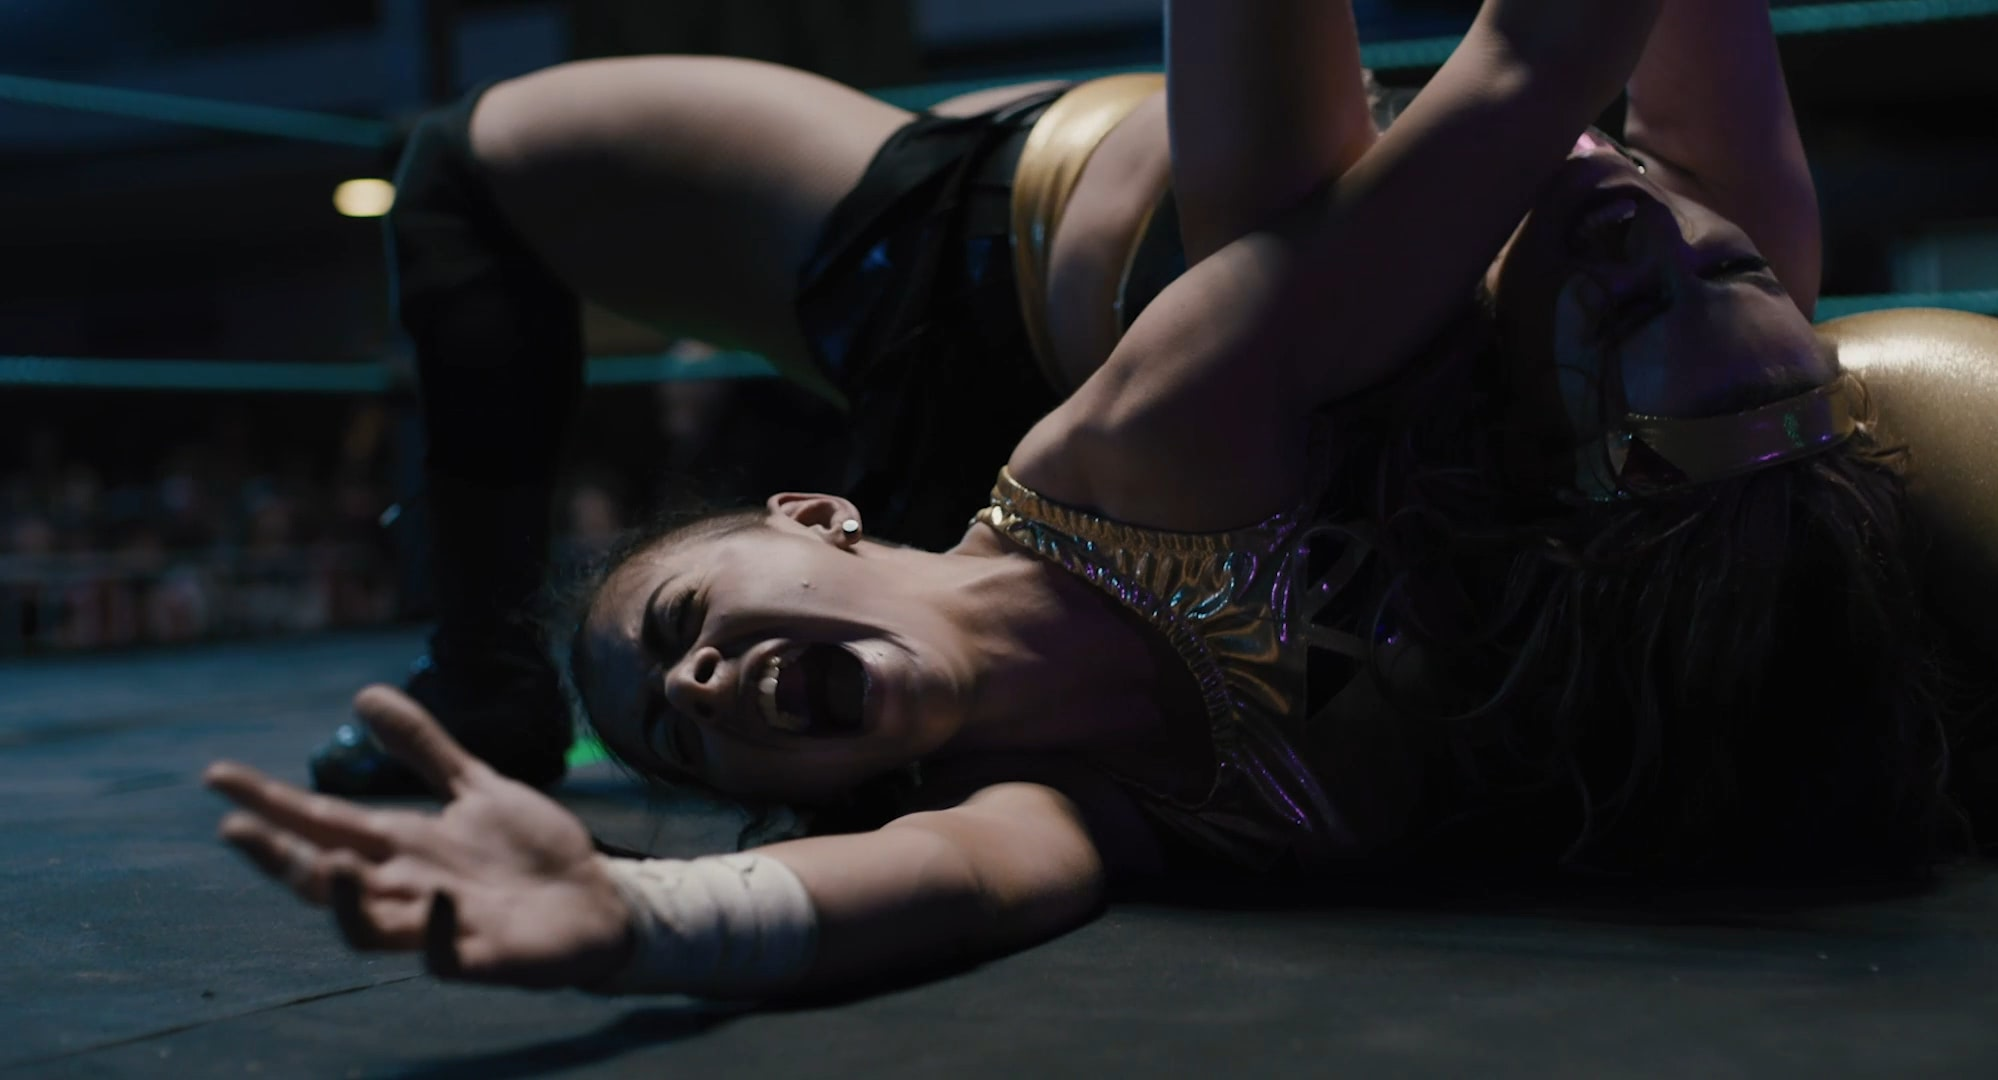 A young woman lying on the floor of the ring, screaming in pain, while another woman is on top of her.